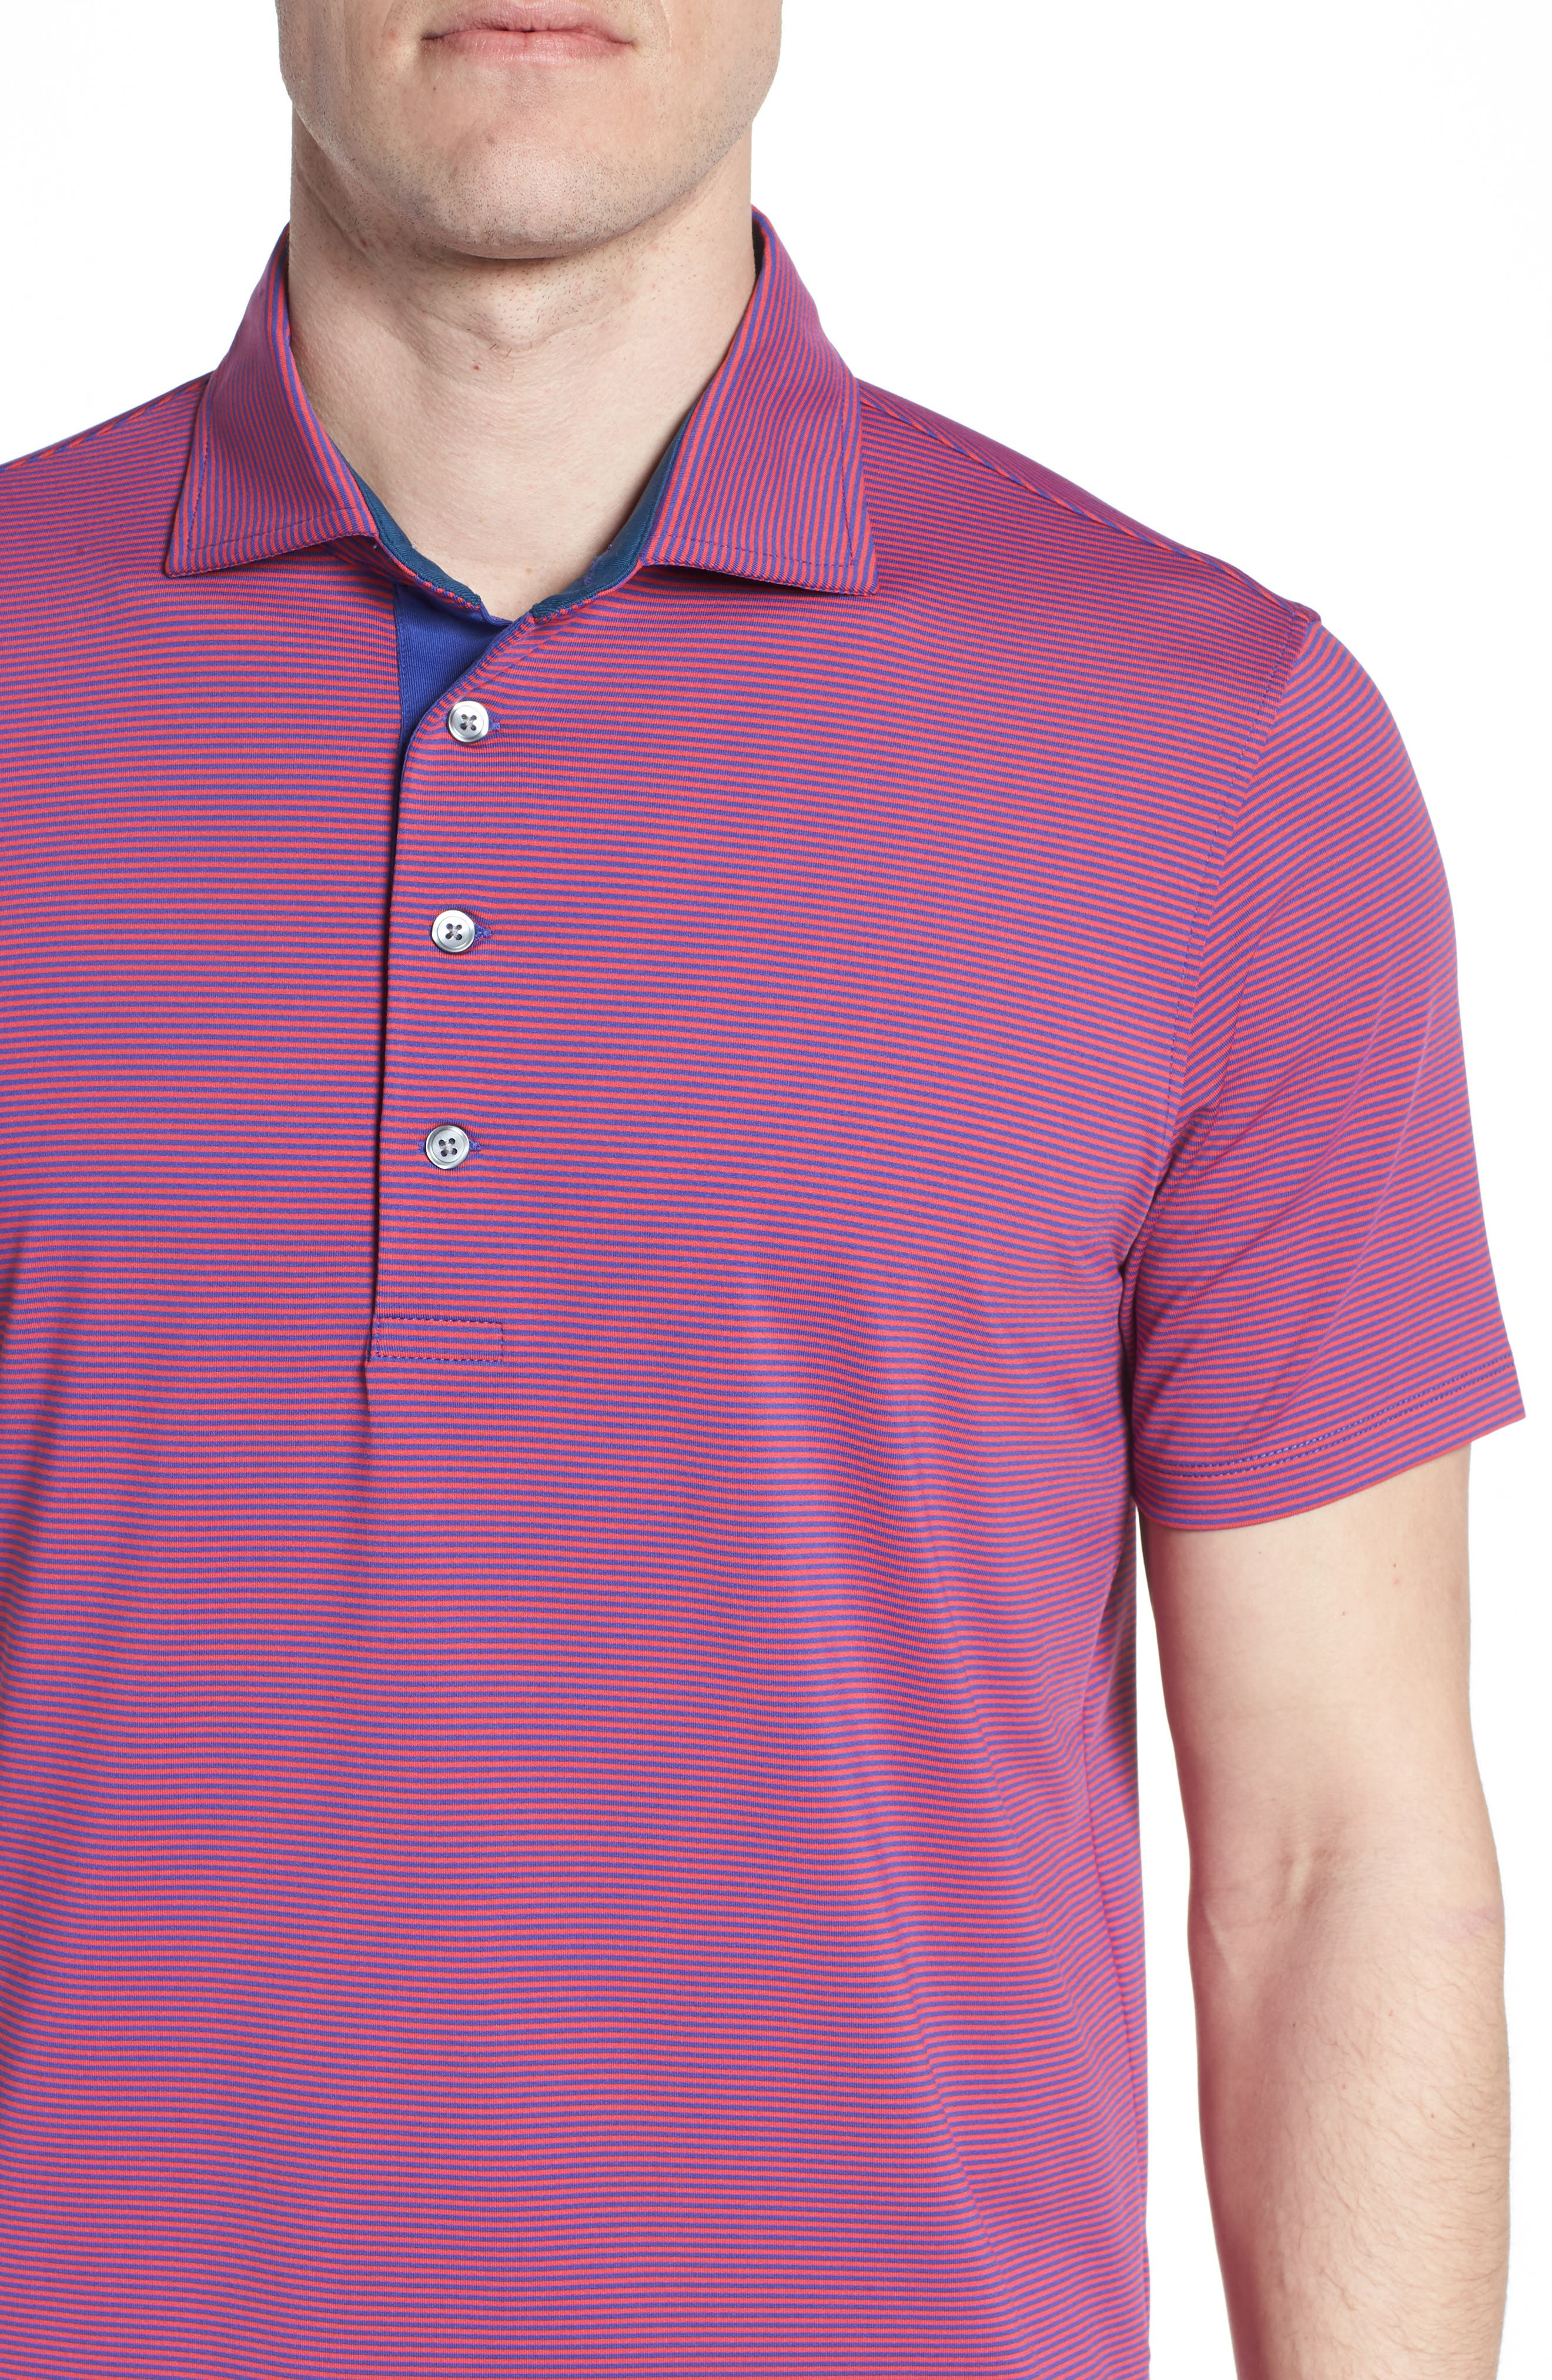 Saranac Jersey Polo,                             Alternate thumbnail 4, color,                             650